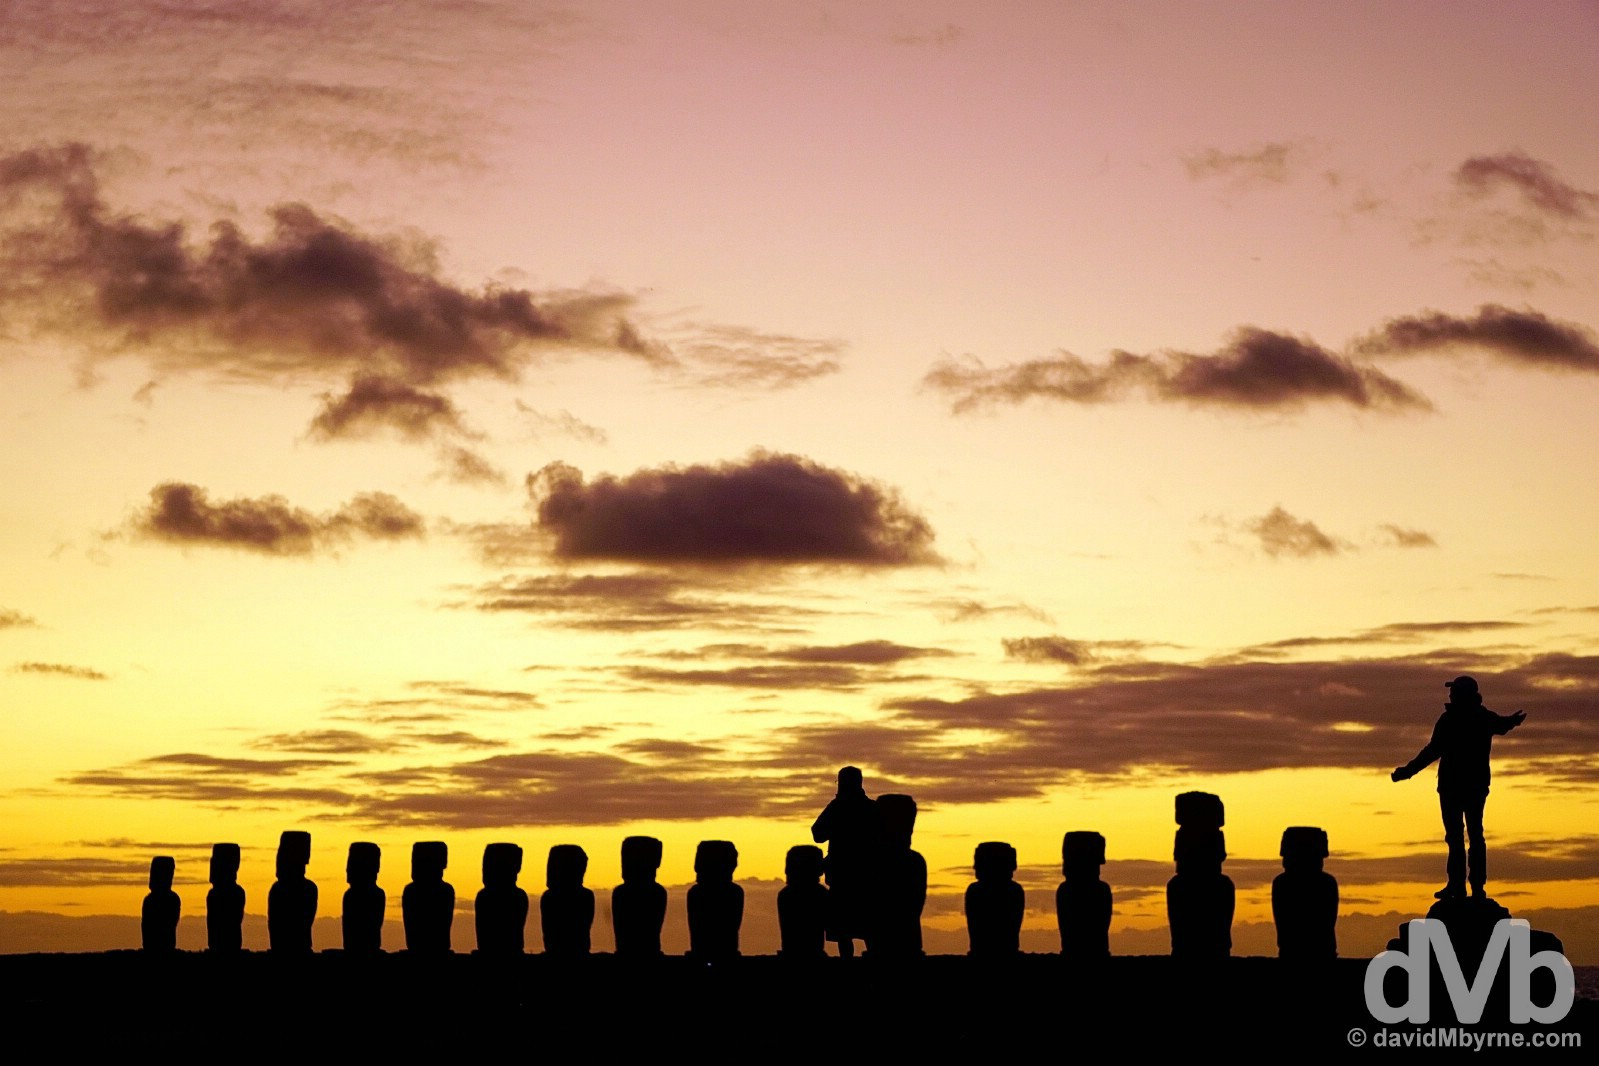 Awaiting sunrise at Ahu Tongariki, Easter Island, Chile. October 3, 2015.